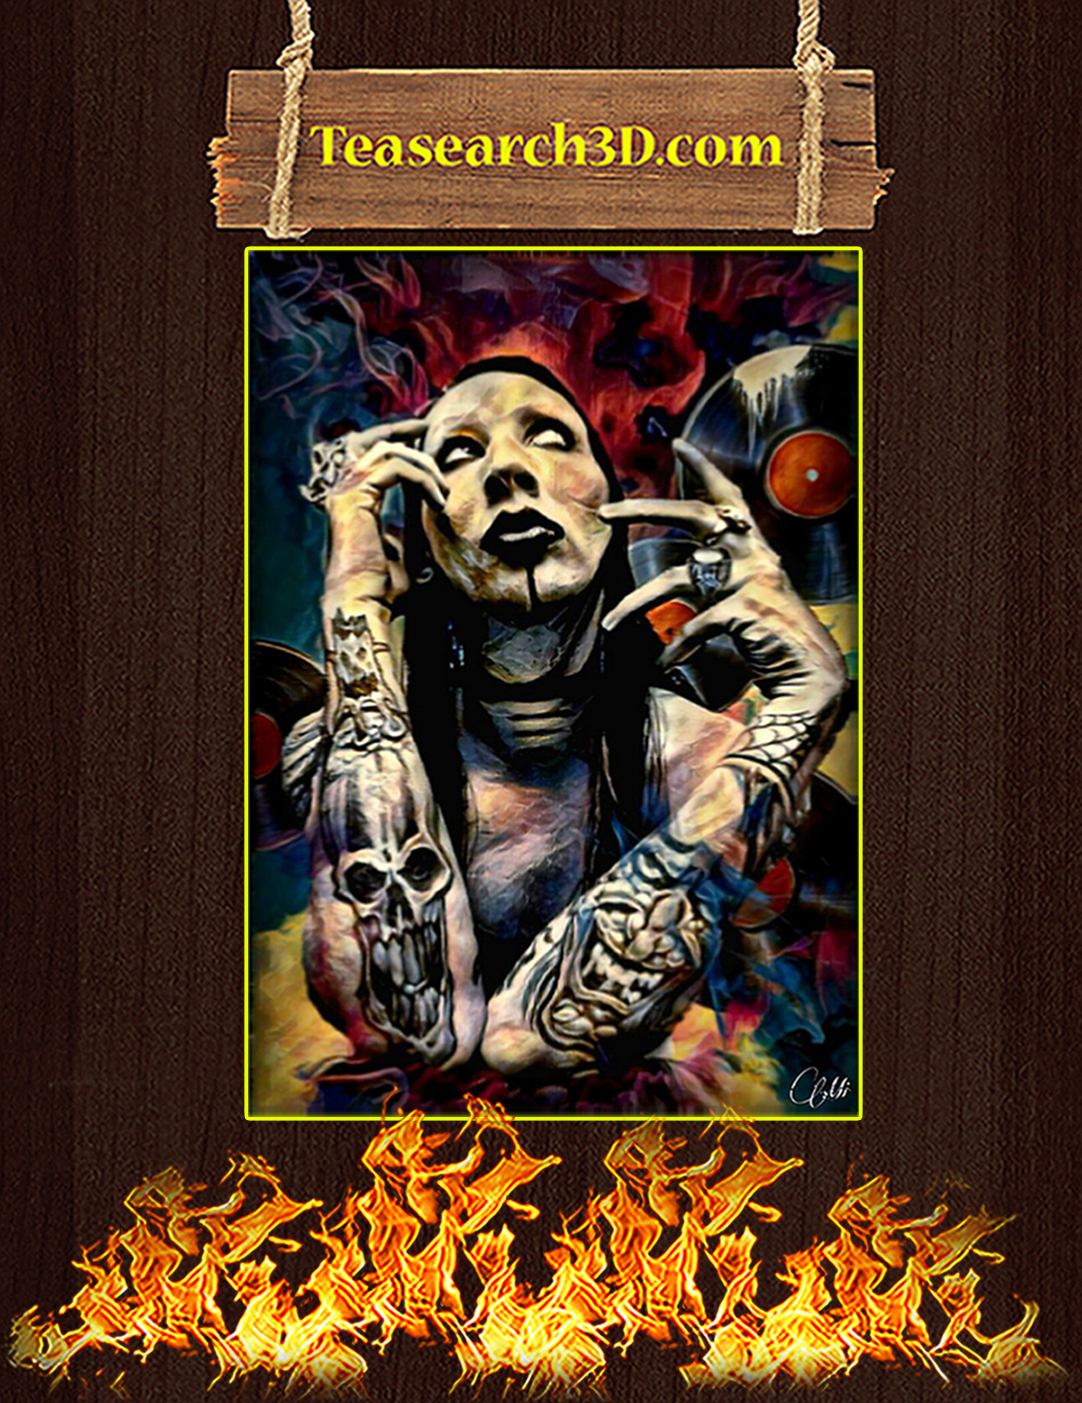 Marilyn manson poster A2